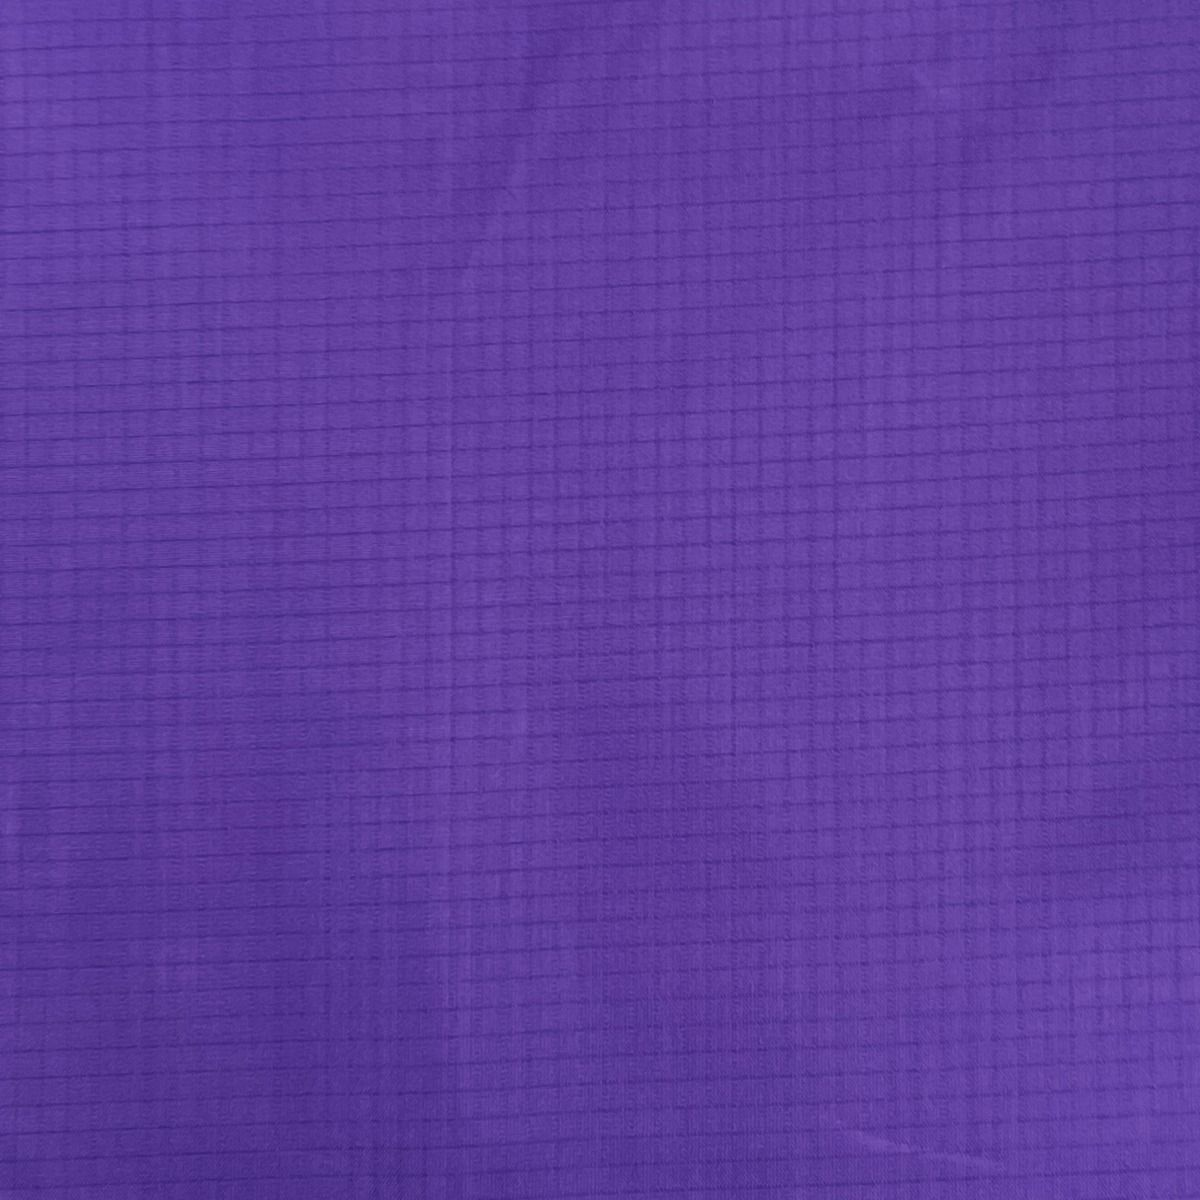 Ripstop Fabric Waterproof Material - Purple